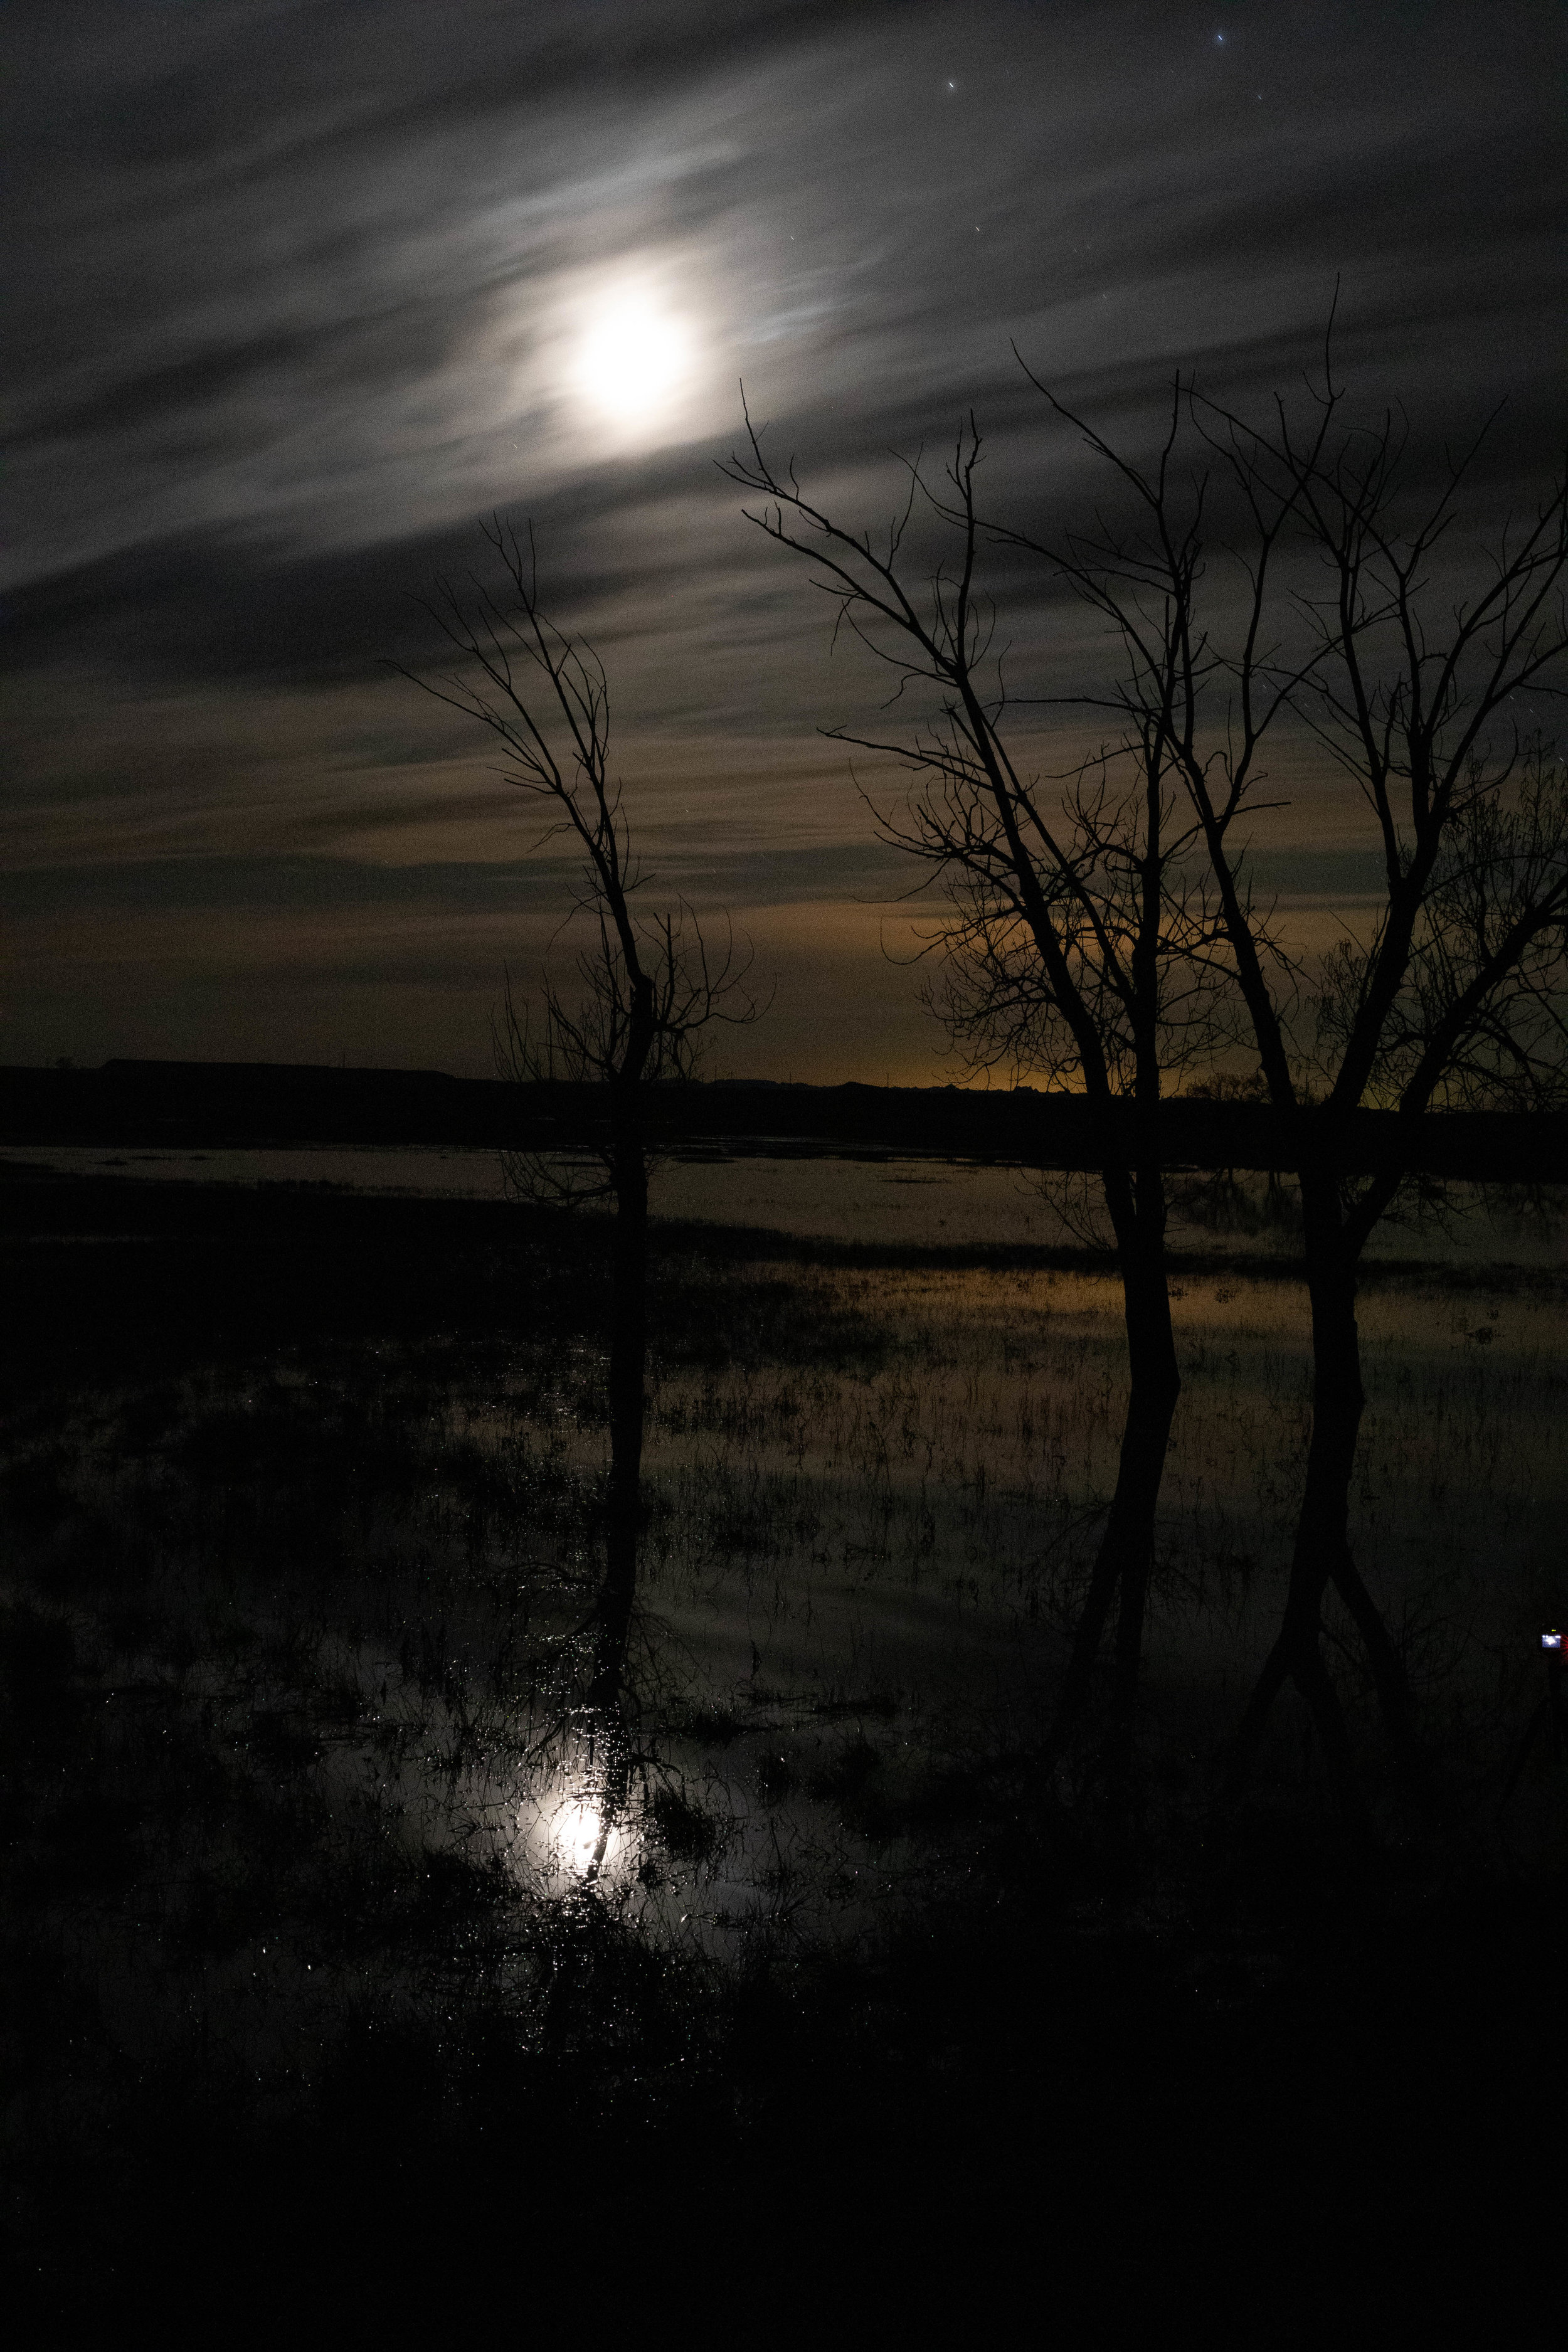 long exposure - photography at night - visit your ghosts